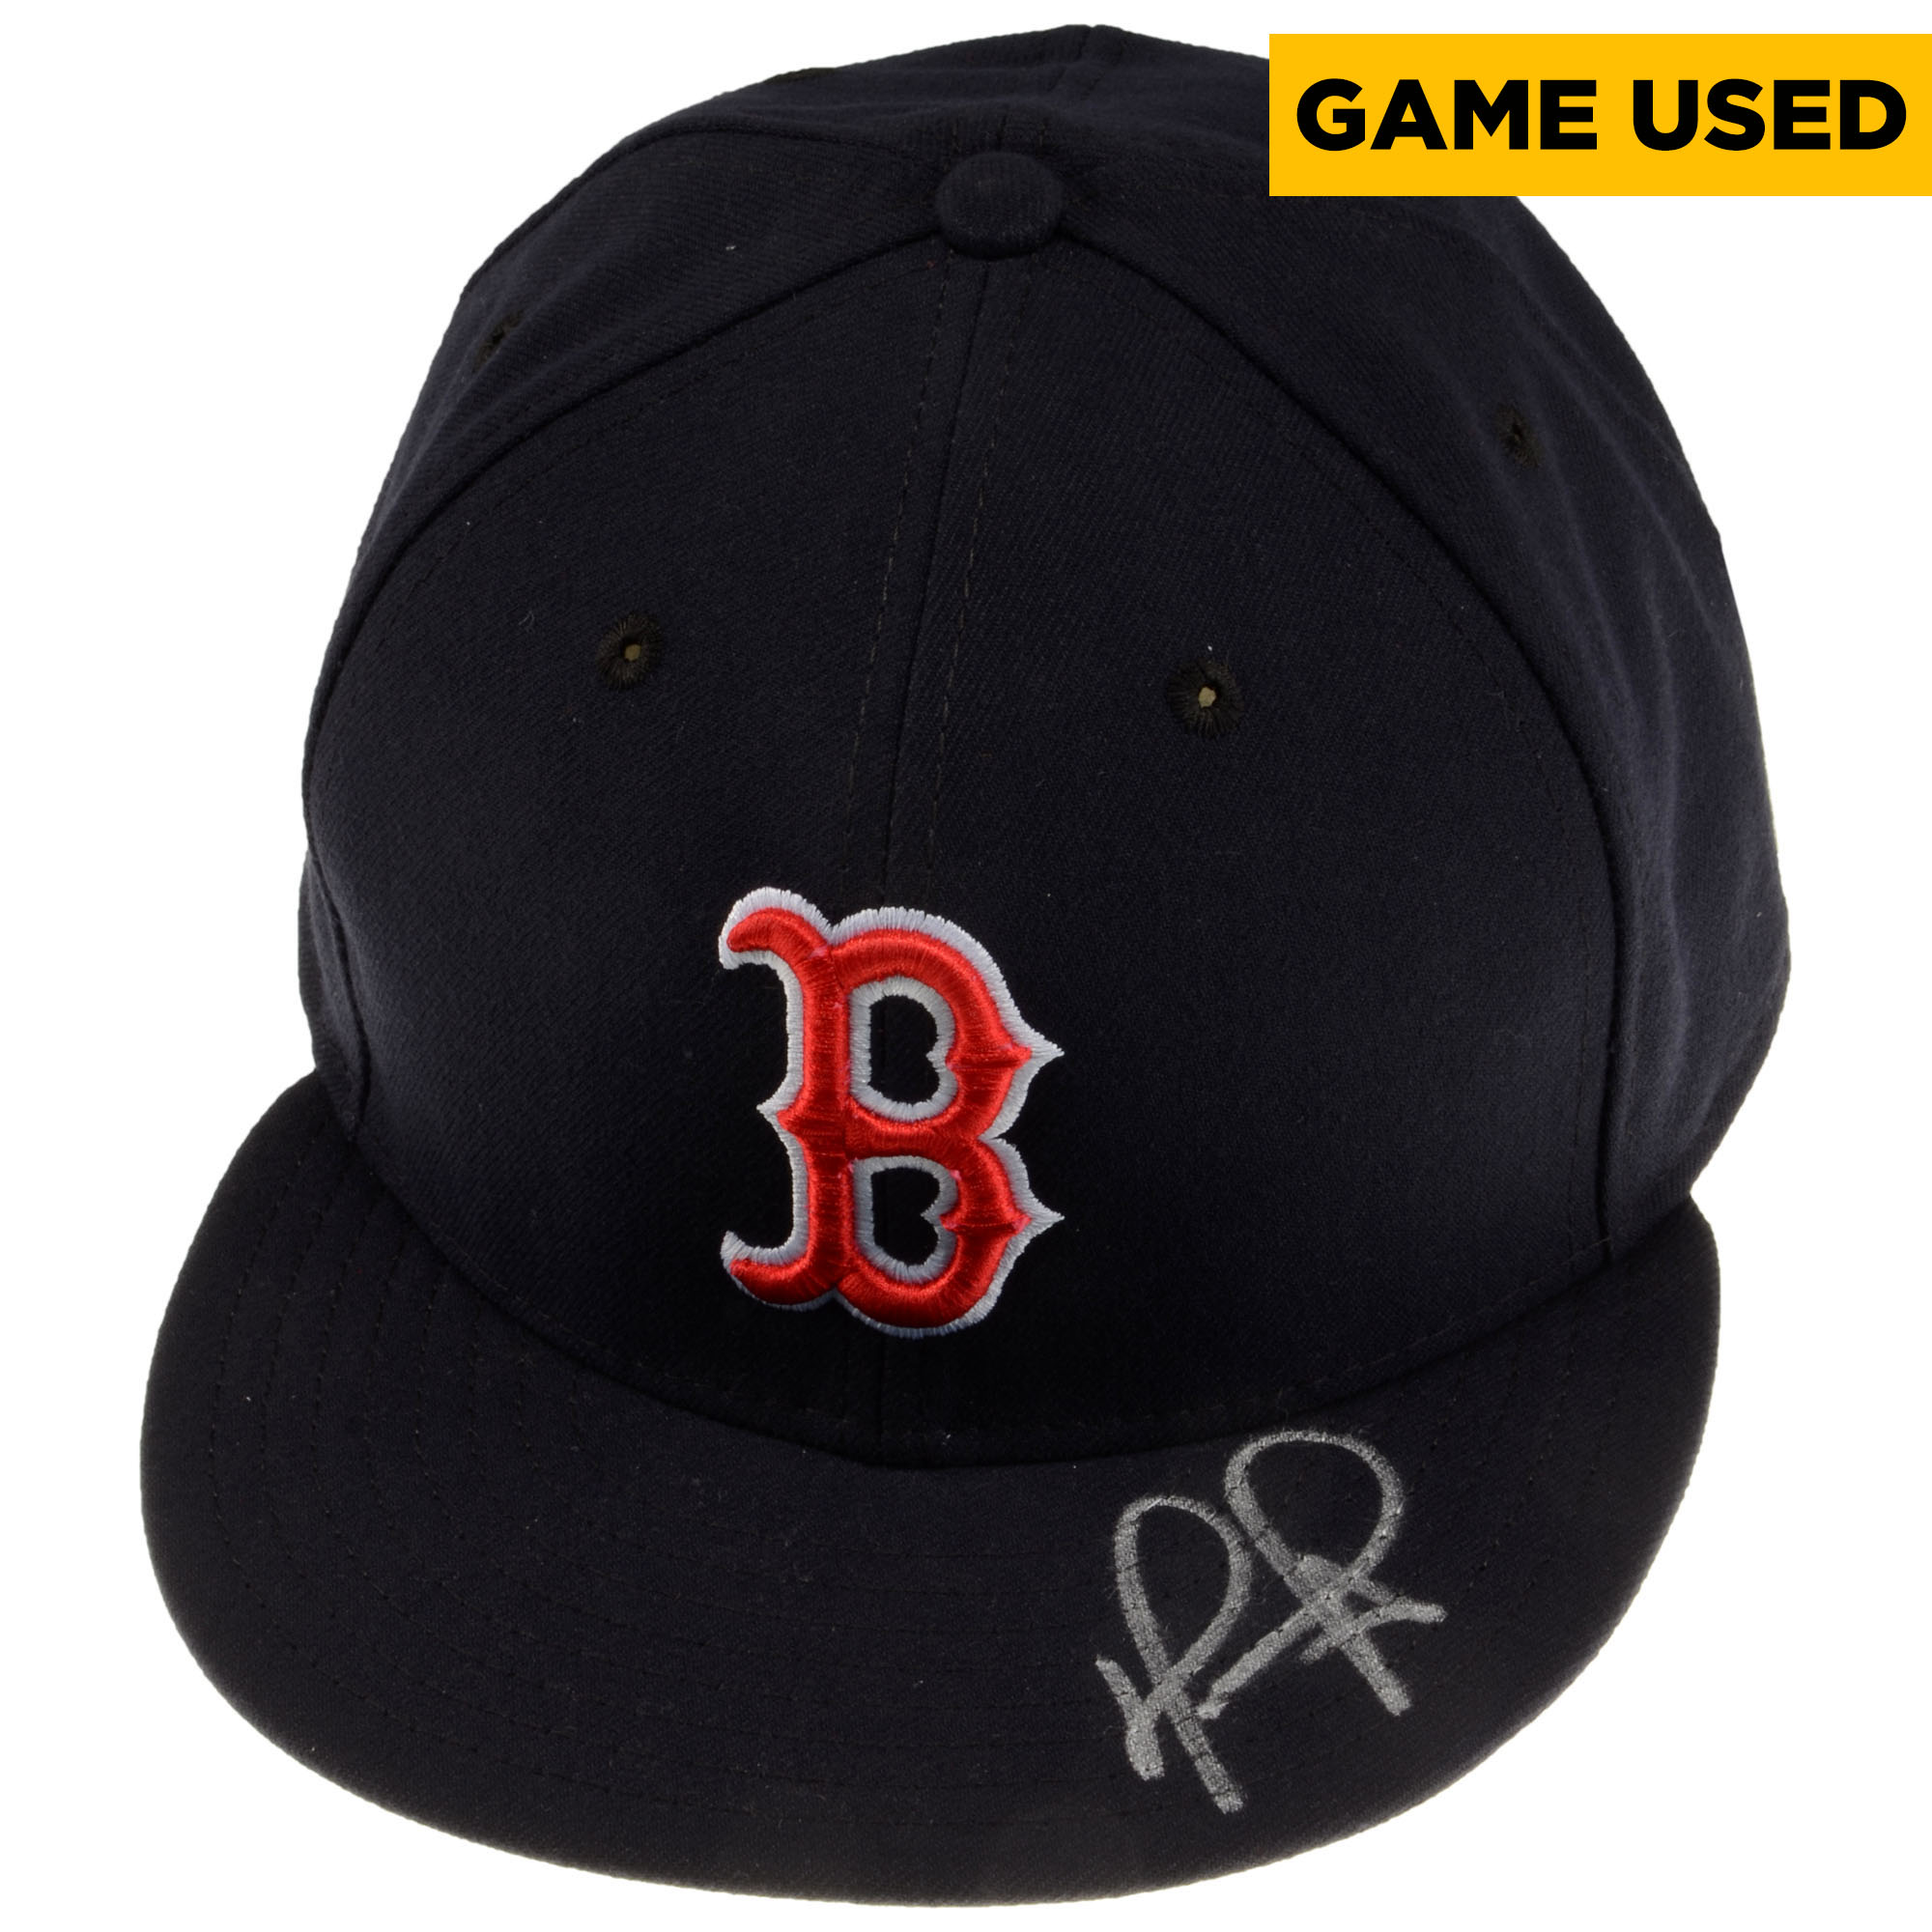 David Ortiz Boston Red Sox Fanatics Authentic Autographed Game-Used 2016 Cap - Actual Cap Will Vary - No Size